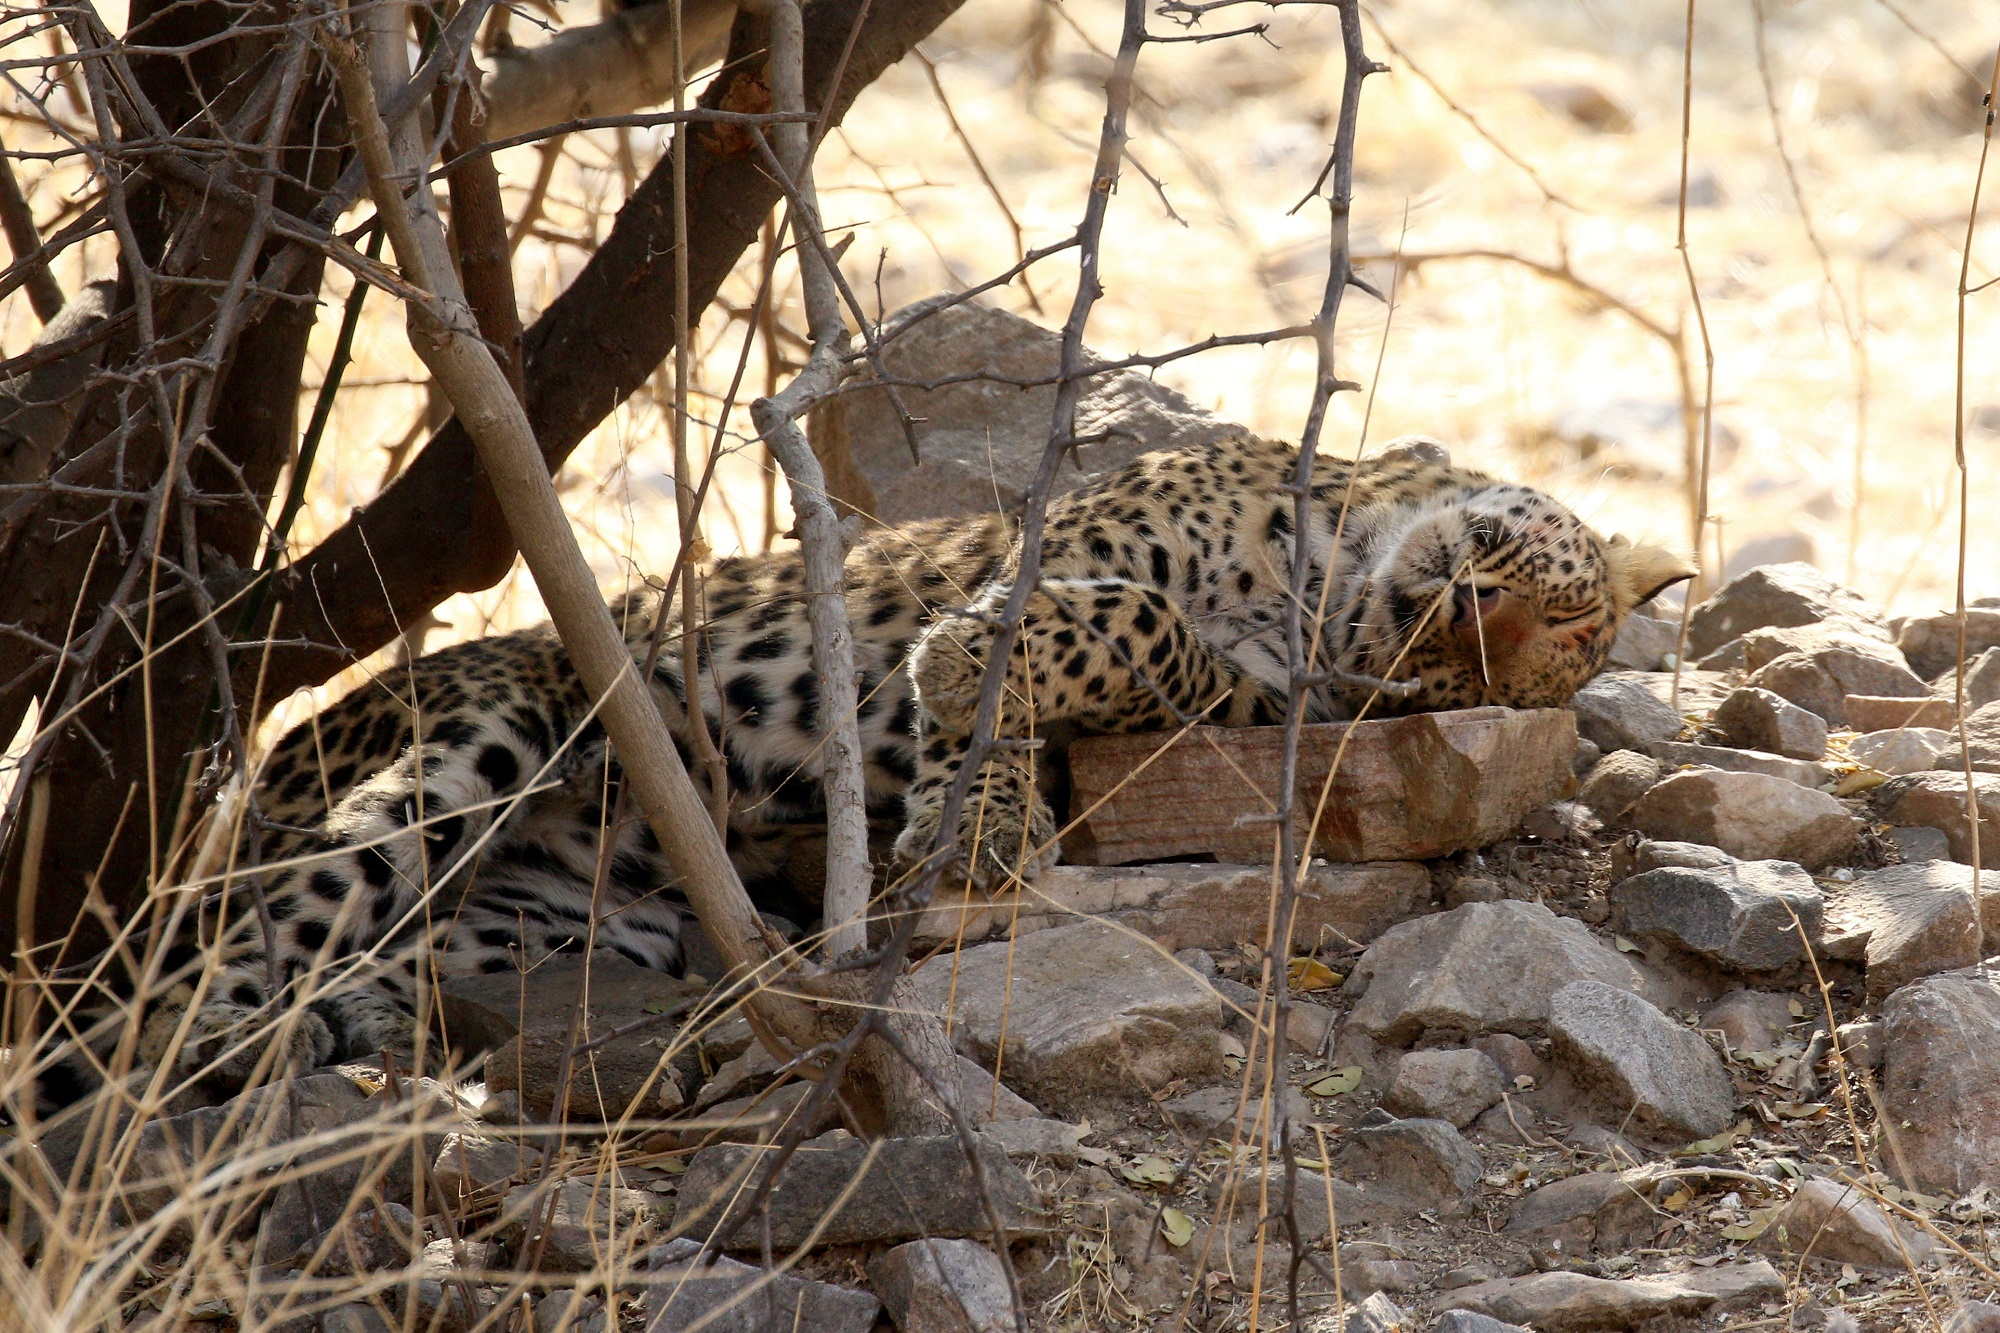 Leopard in deep sleep in the afternoon at Jhalana jungle, Jaipur